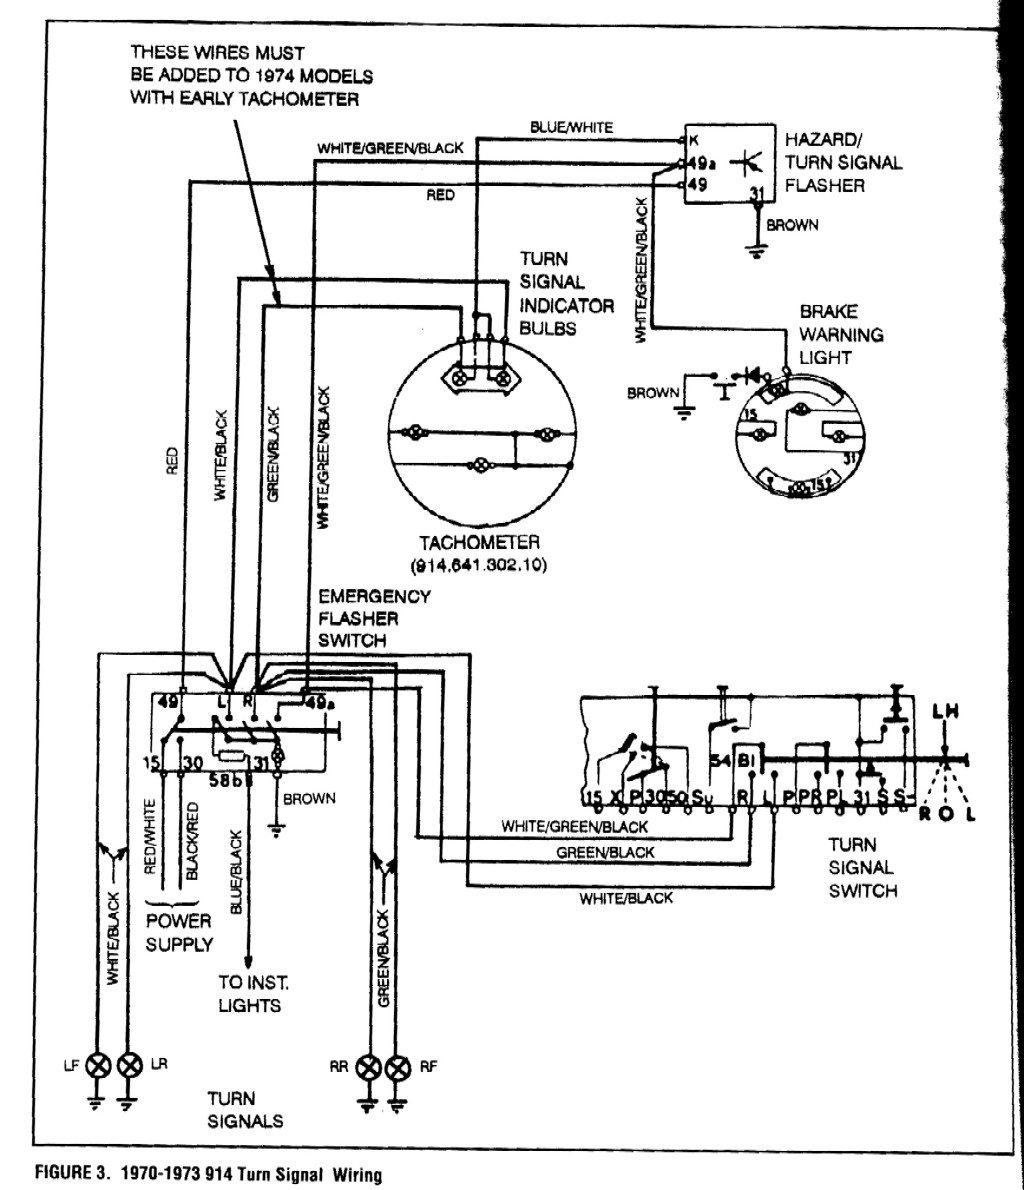 E167A Super Tach 3 Wiring    Diagram      Digital Resources